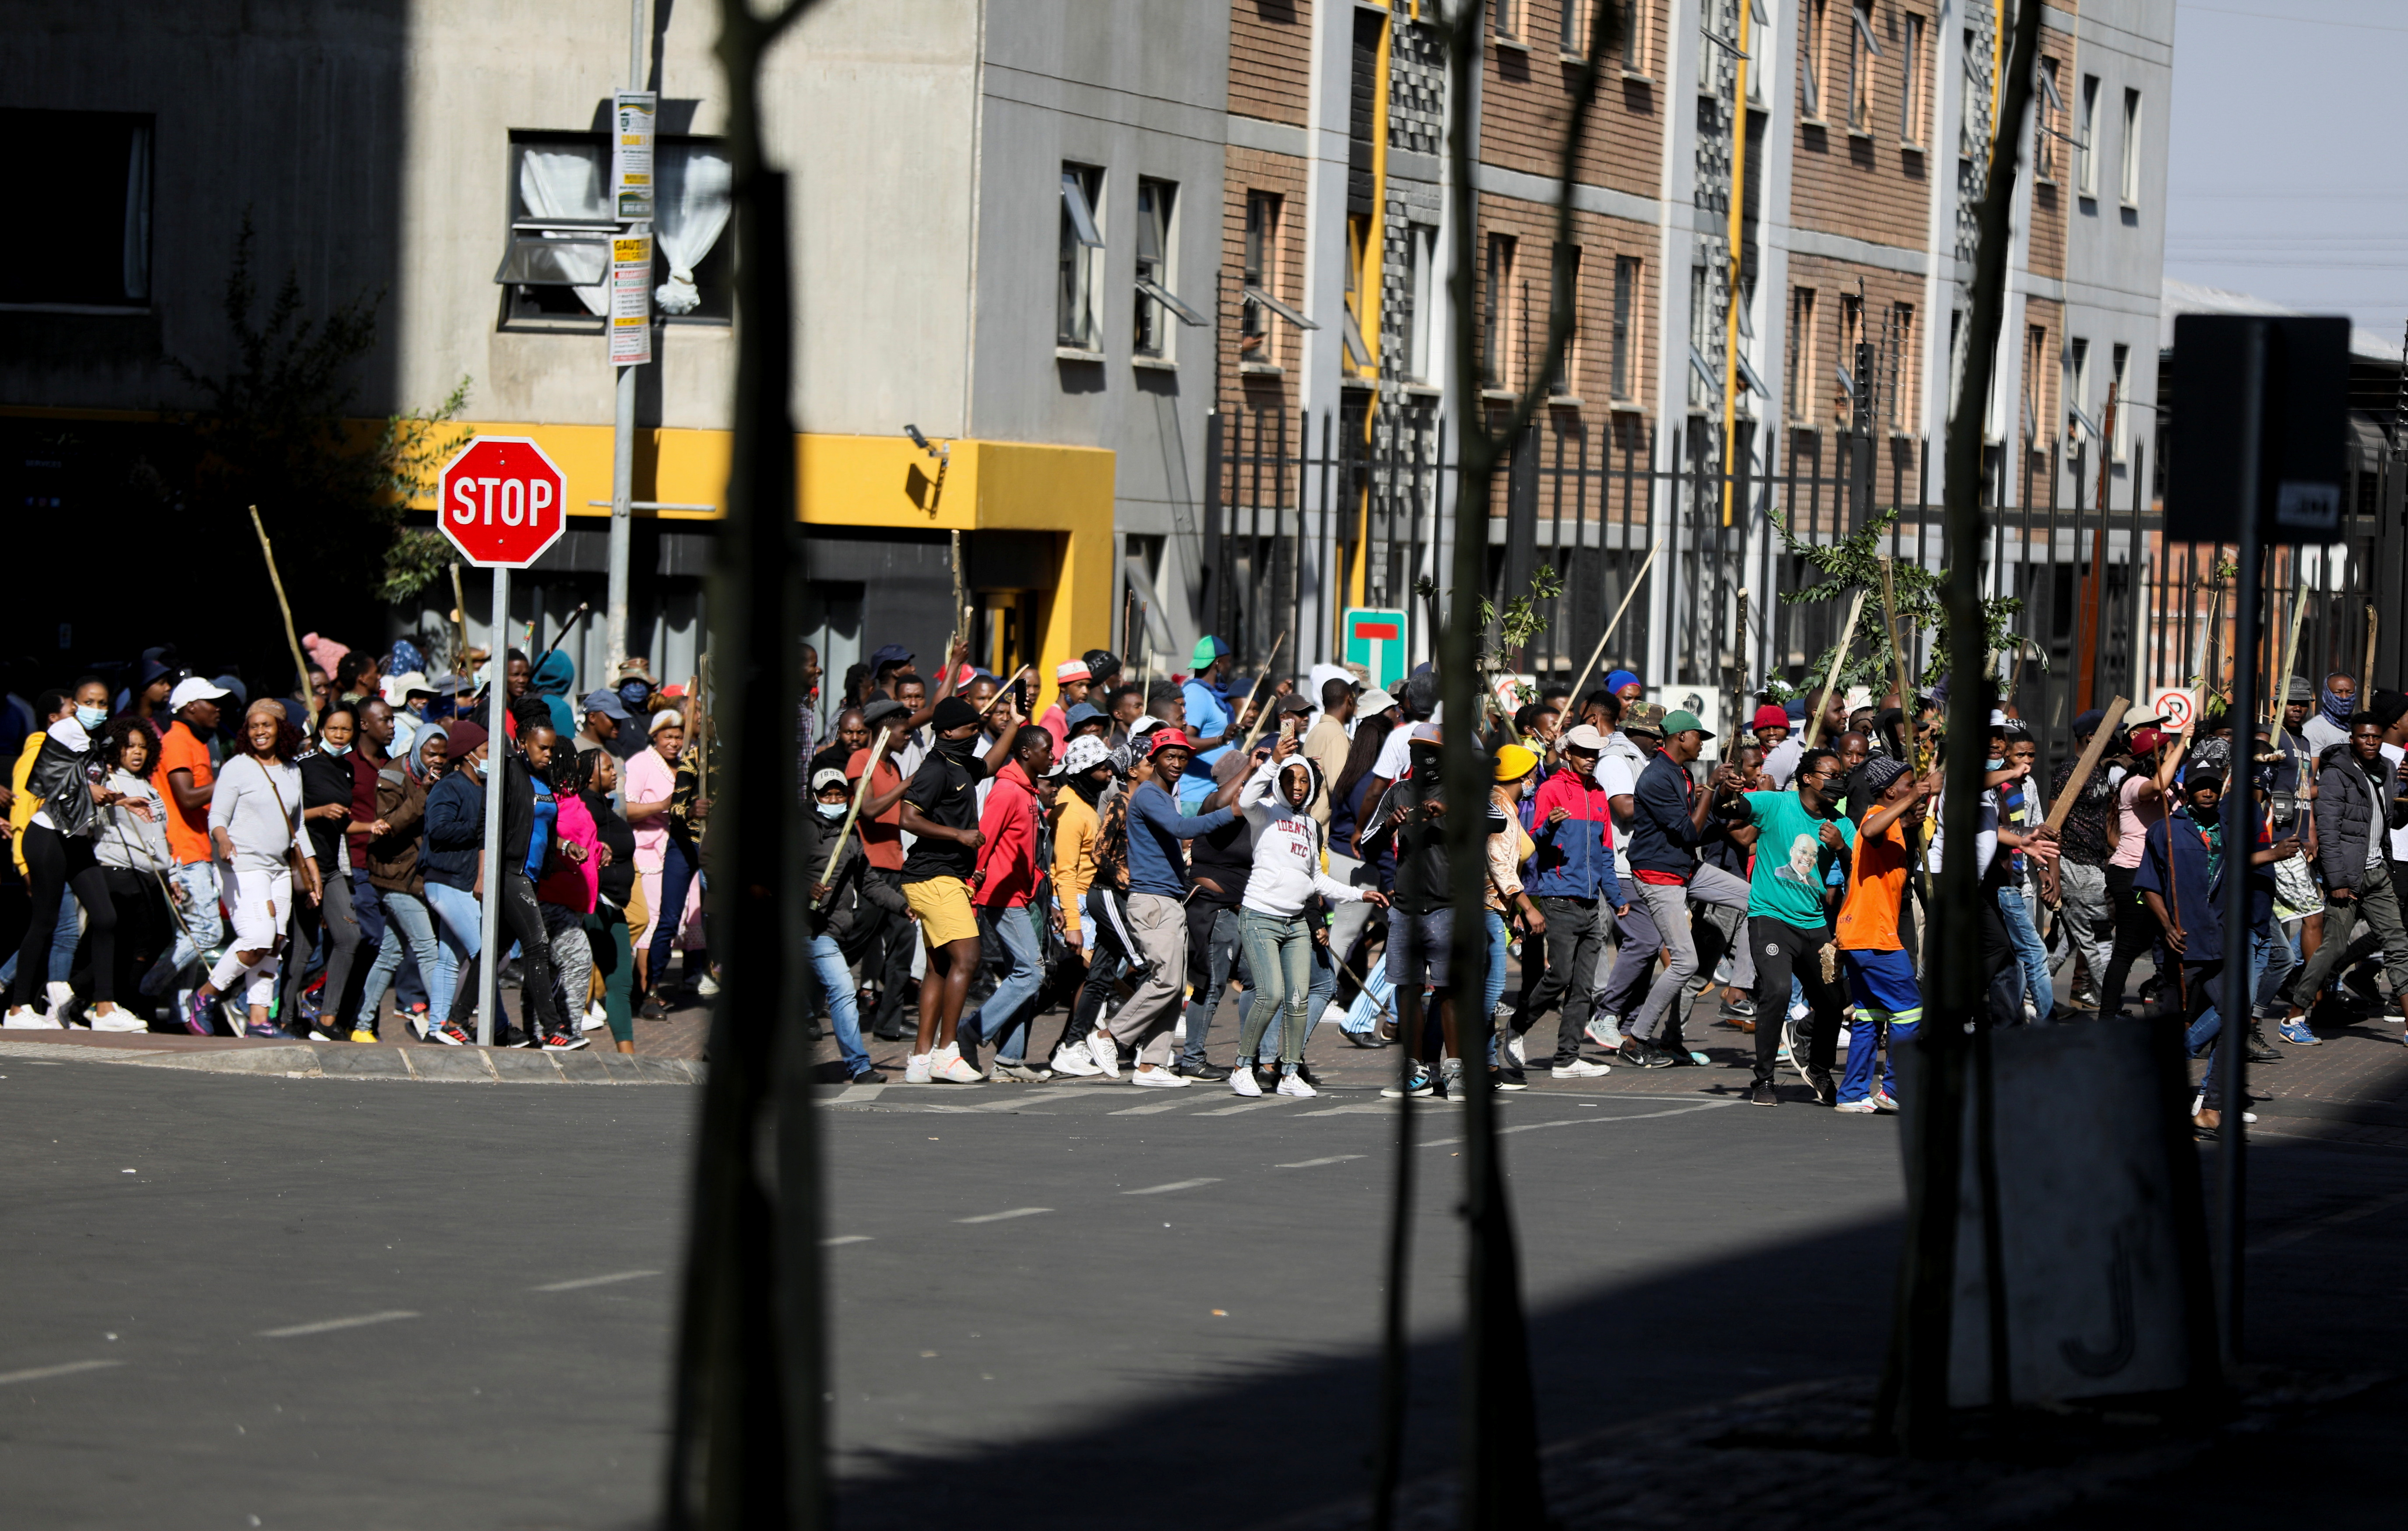 South Africa Deploys Army To Quell Unrest Linked To Zuma Jailing Reuters